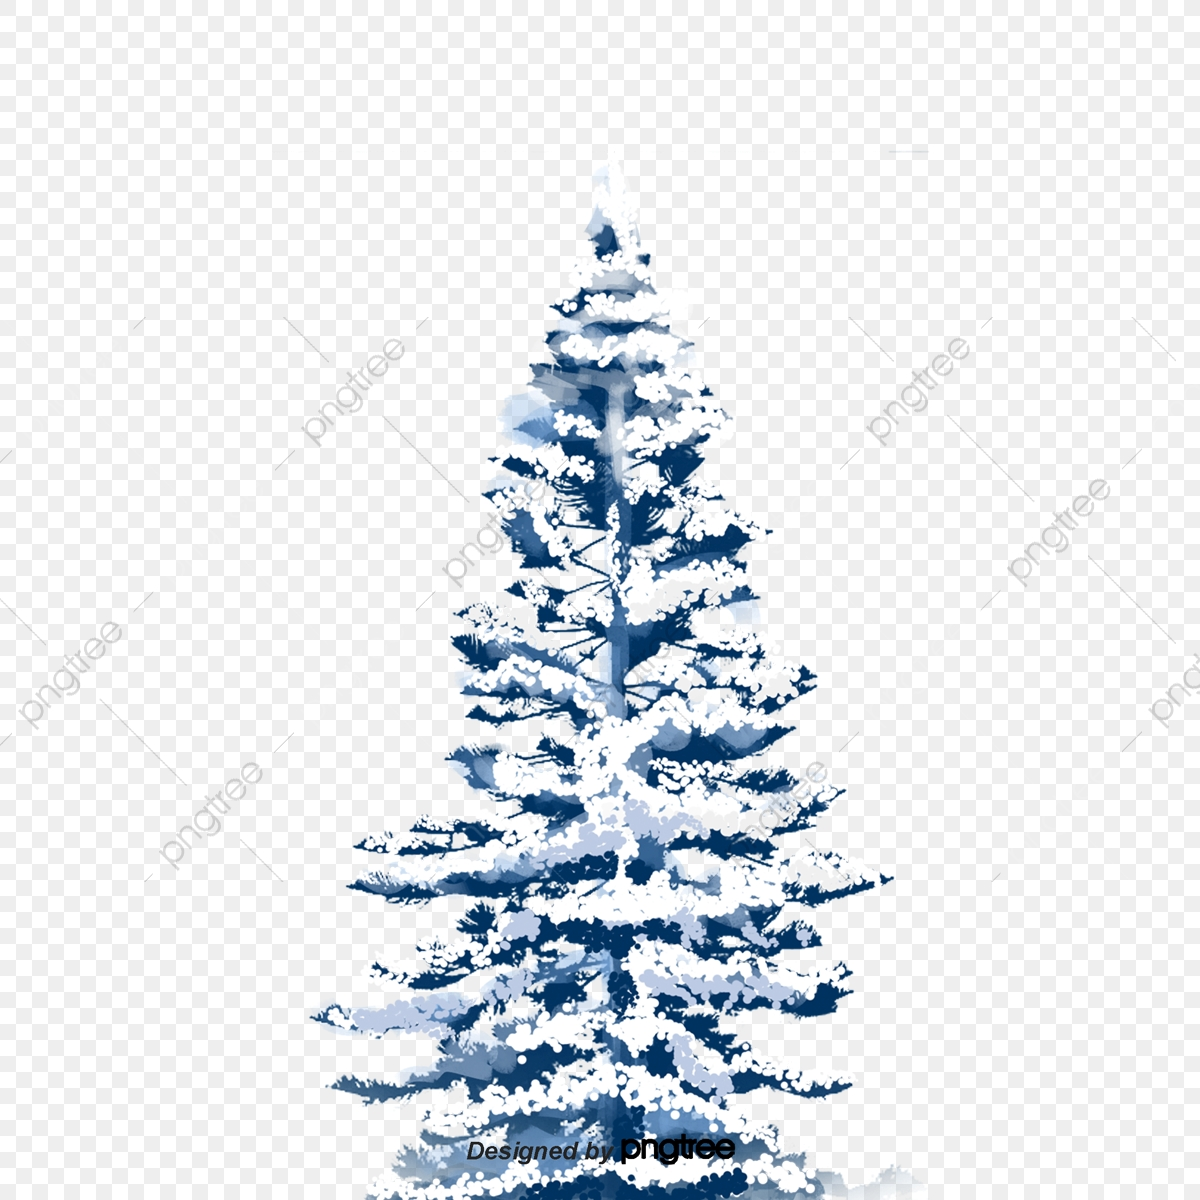 Free Png Snowy Winter Ground With Trees Png - Snowy Winter Trees Clipart,  Transparent Png - vhv